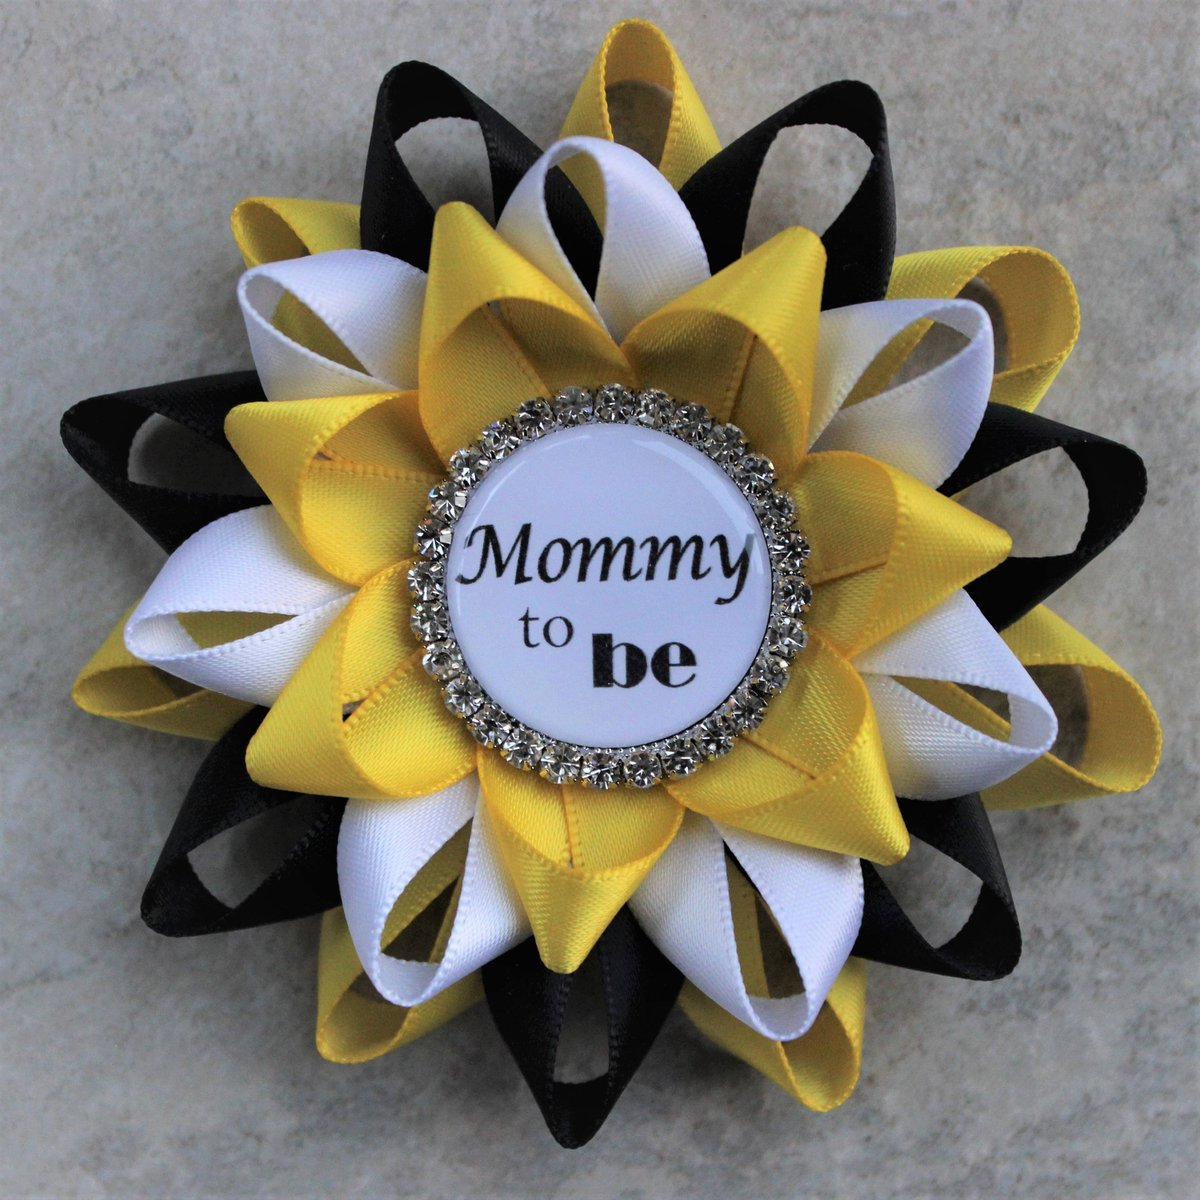 Bee Baby Shower Decorations, Black and Yellow Baby Shower Corsages, Bumble Bee Themed Baby Shower, Mommy to Be, Yellow, Black, White https://t.co/GbiWPJPzaX #gifts #shopsmall #ecommerce #style #shopping #etsyshop #smallbiz #etsy https://t.co/EQidhM6y8Q